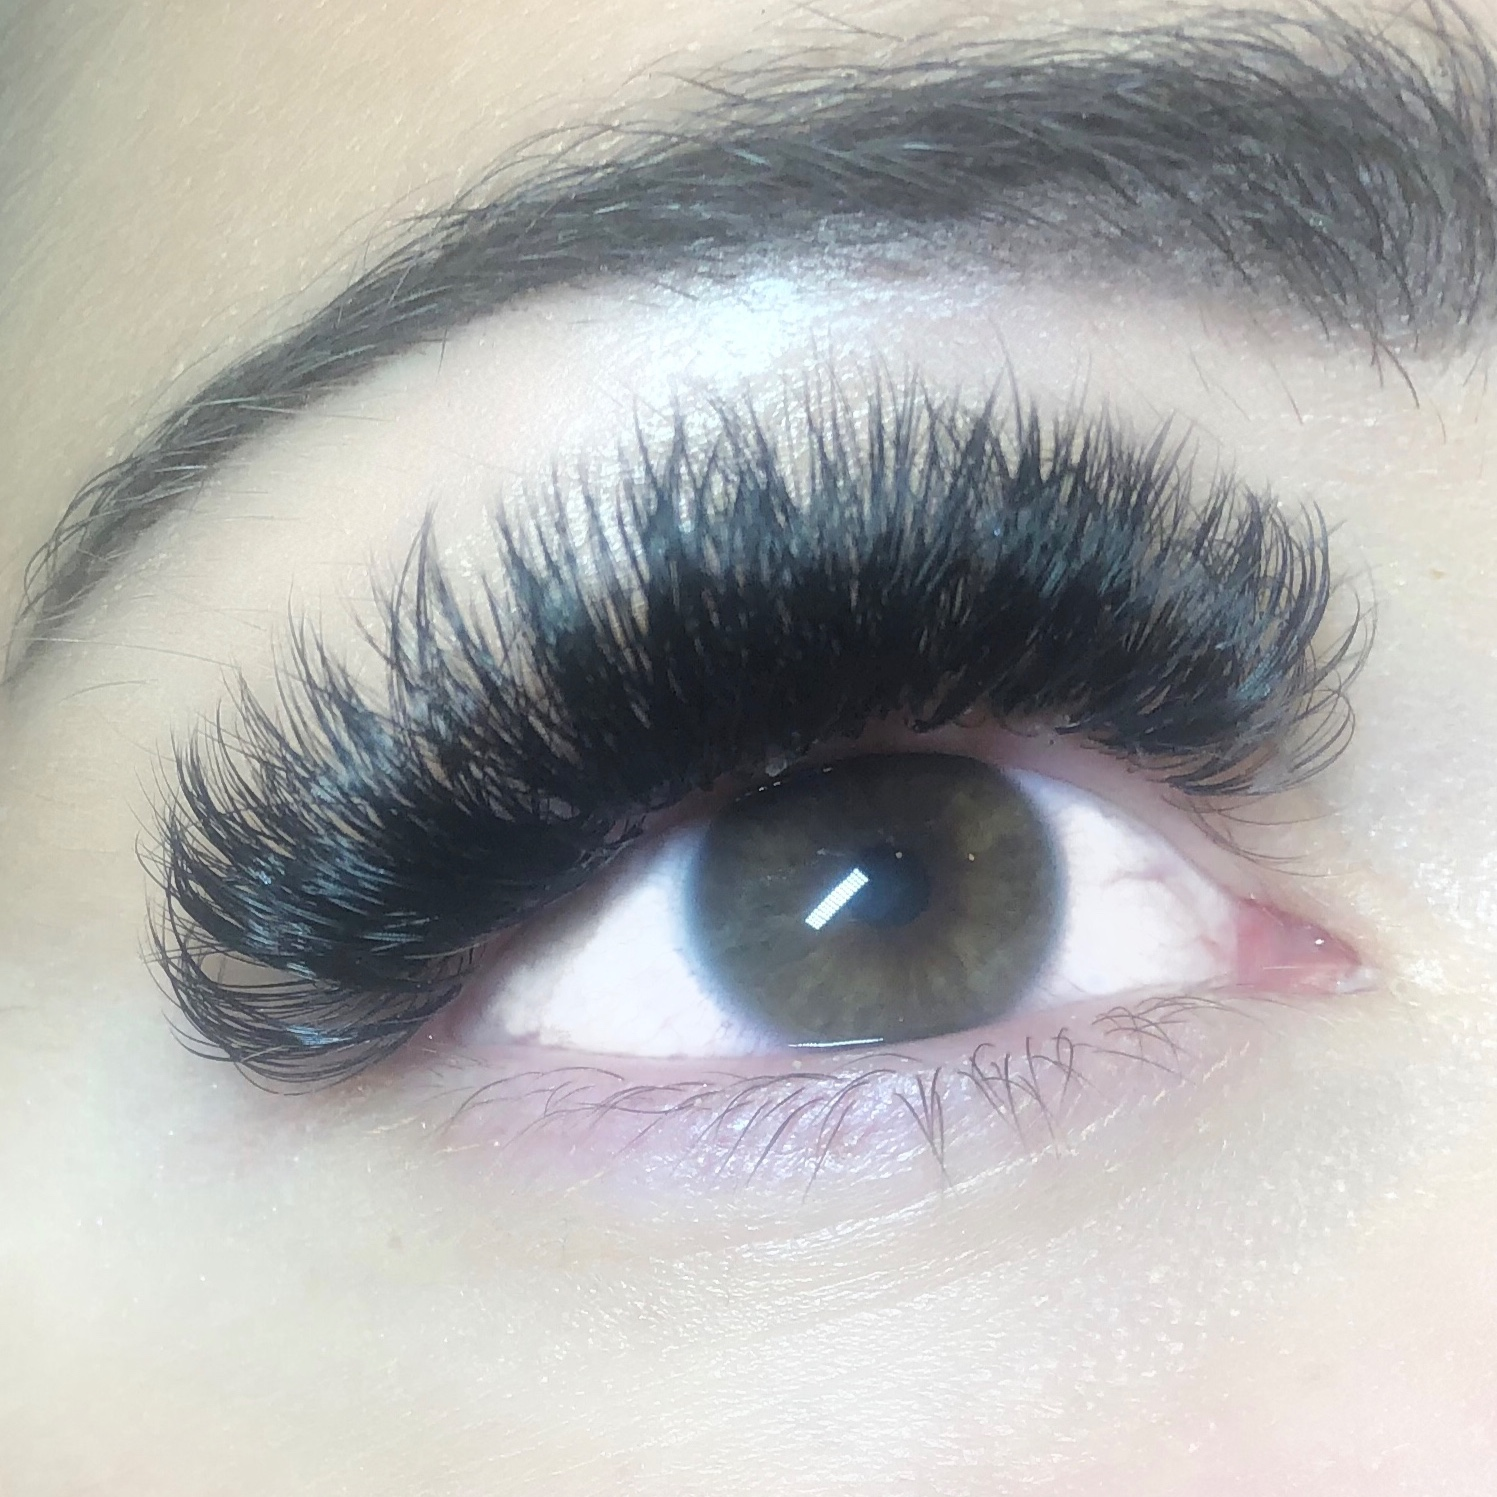 - Mega Volume Lashes are the most dramatic form of lash extensions. It creates the fullest lash line possible. This look is perfect for clients that want super full and glamorous lashes. If you think more is better, this style is for you.